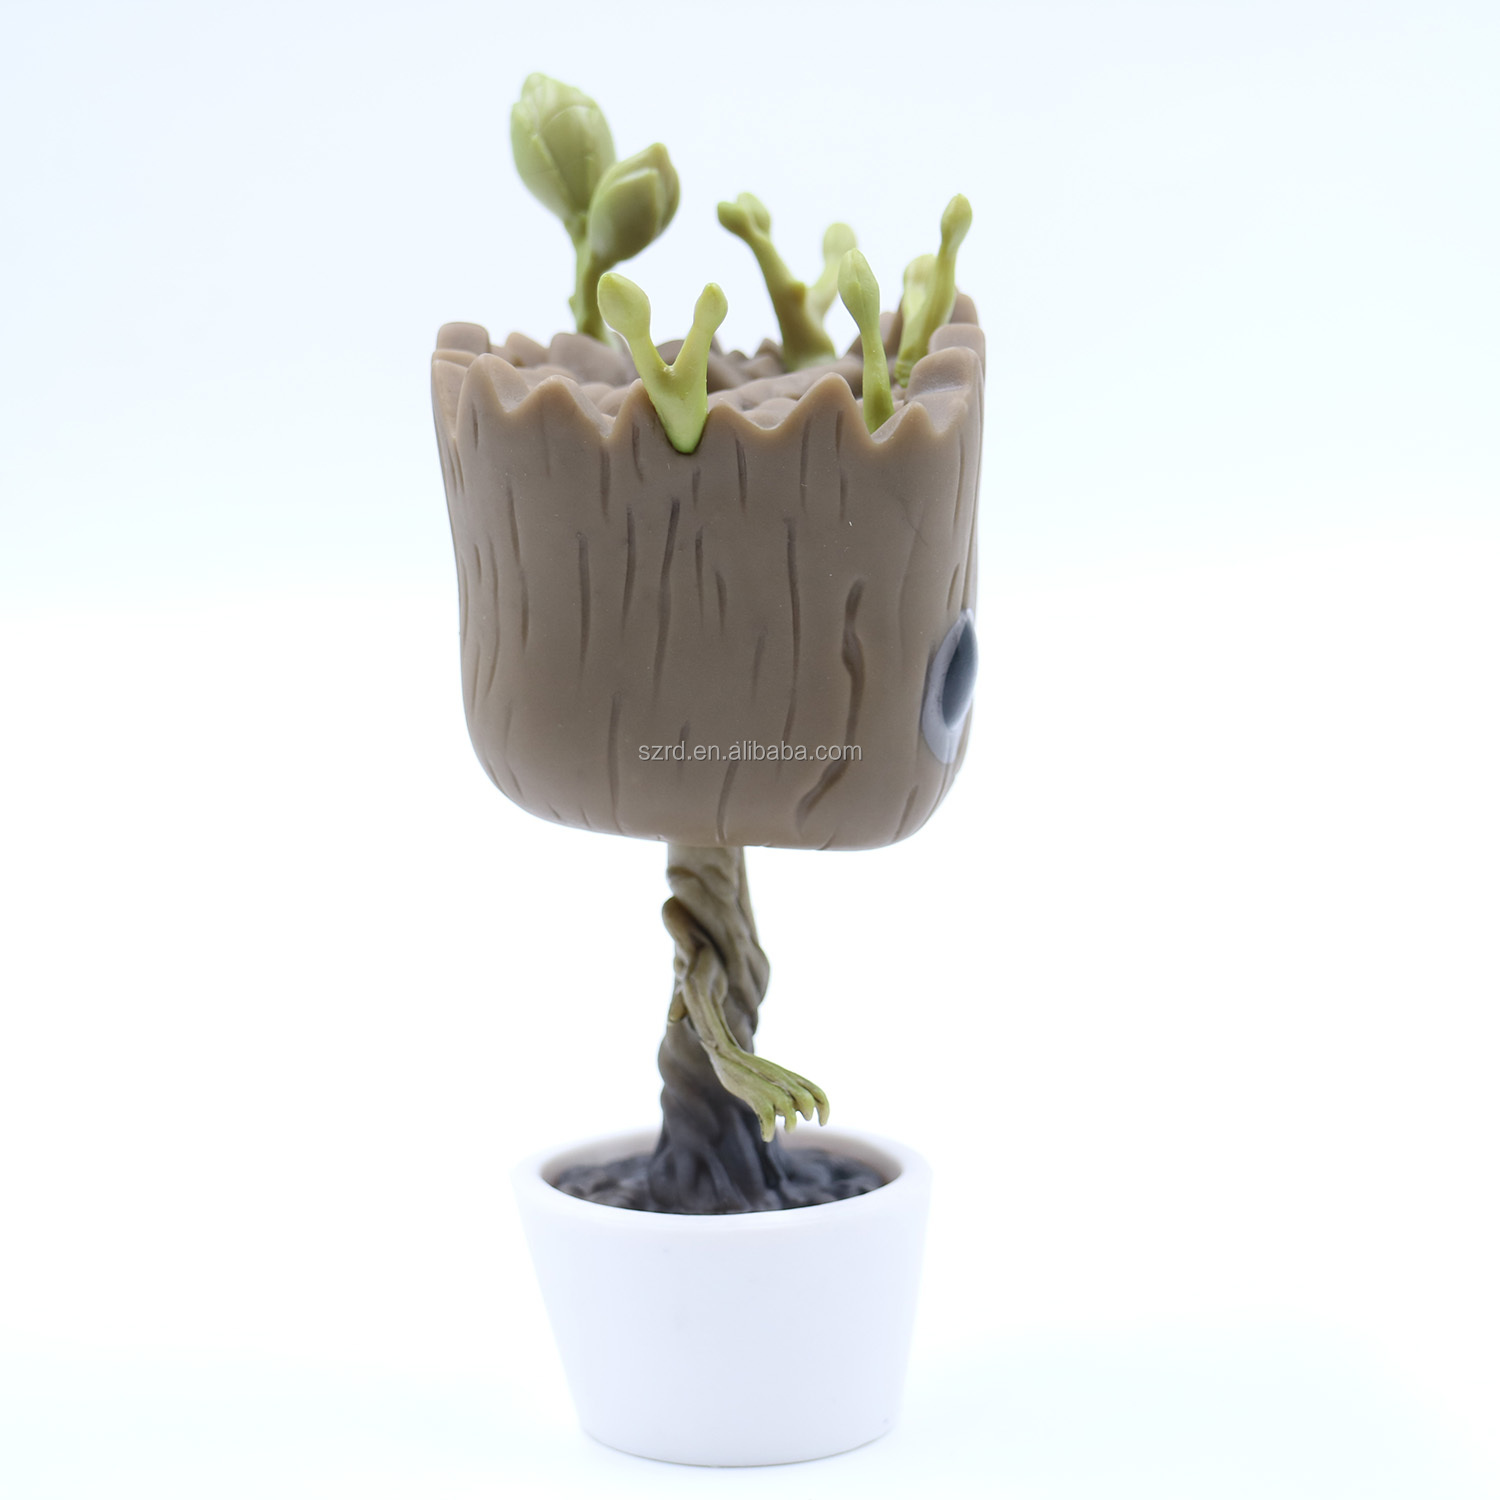 Eco-friendly customized vinyl cartoon character flower pot figures for decoration